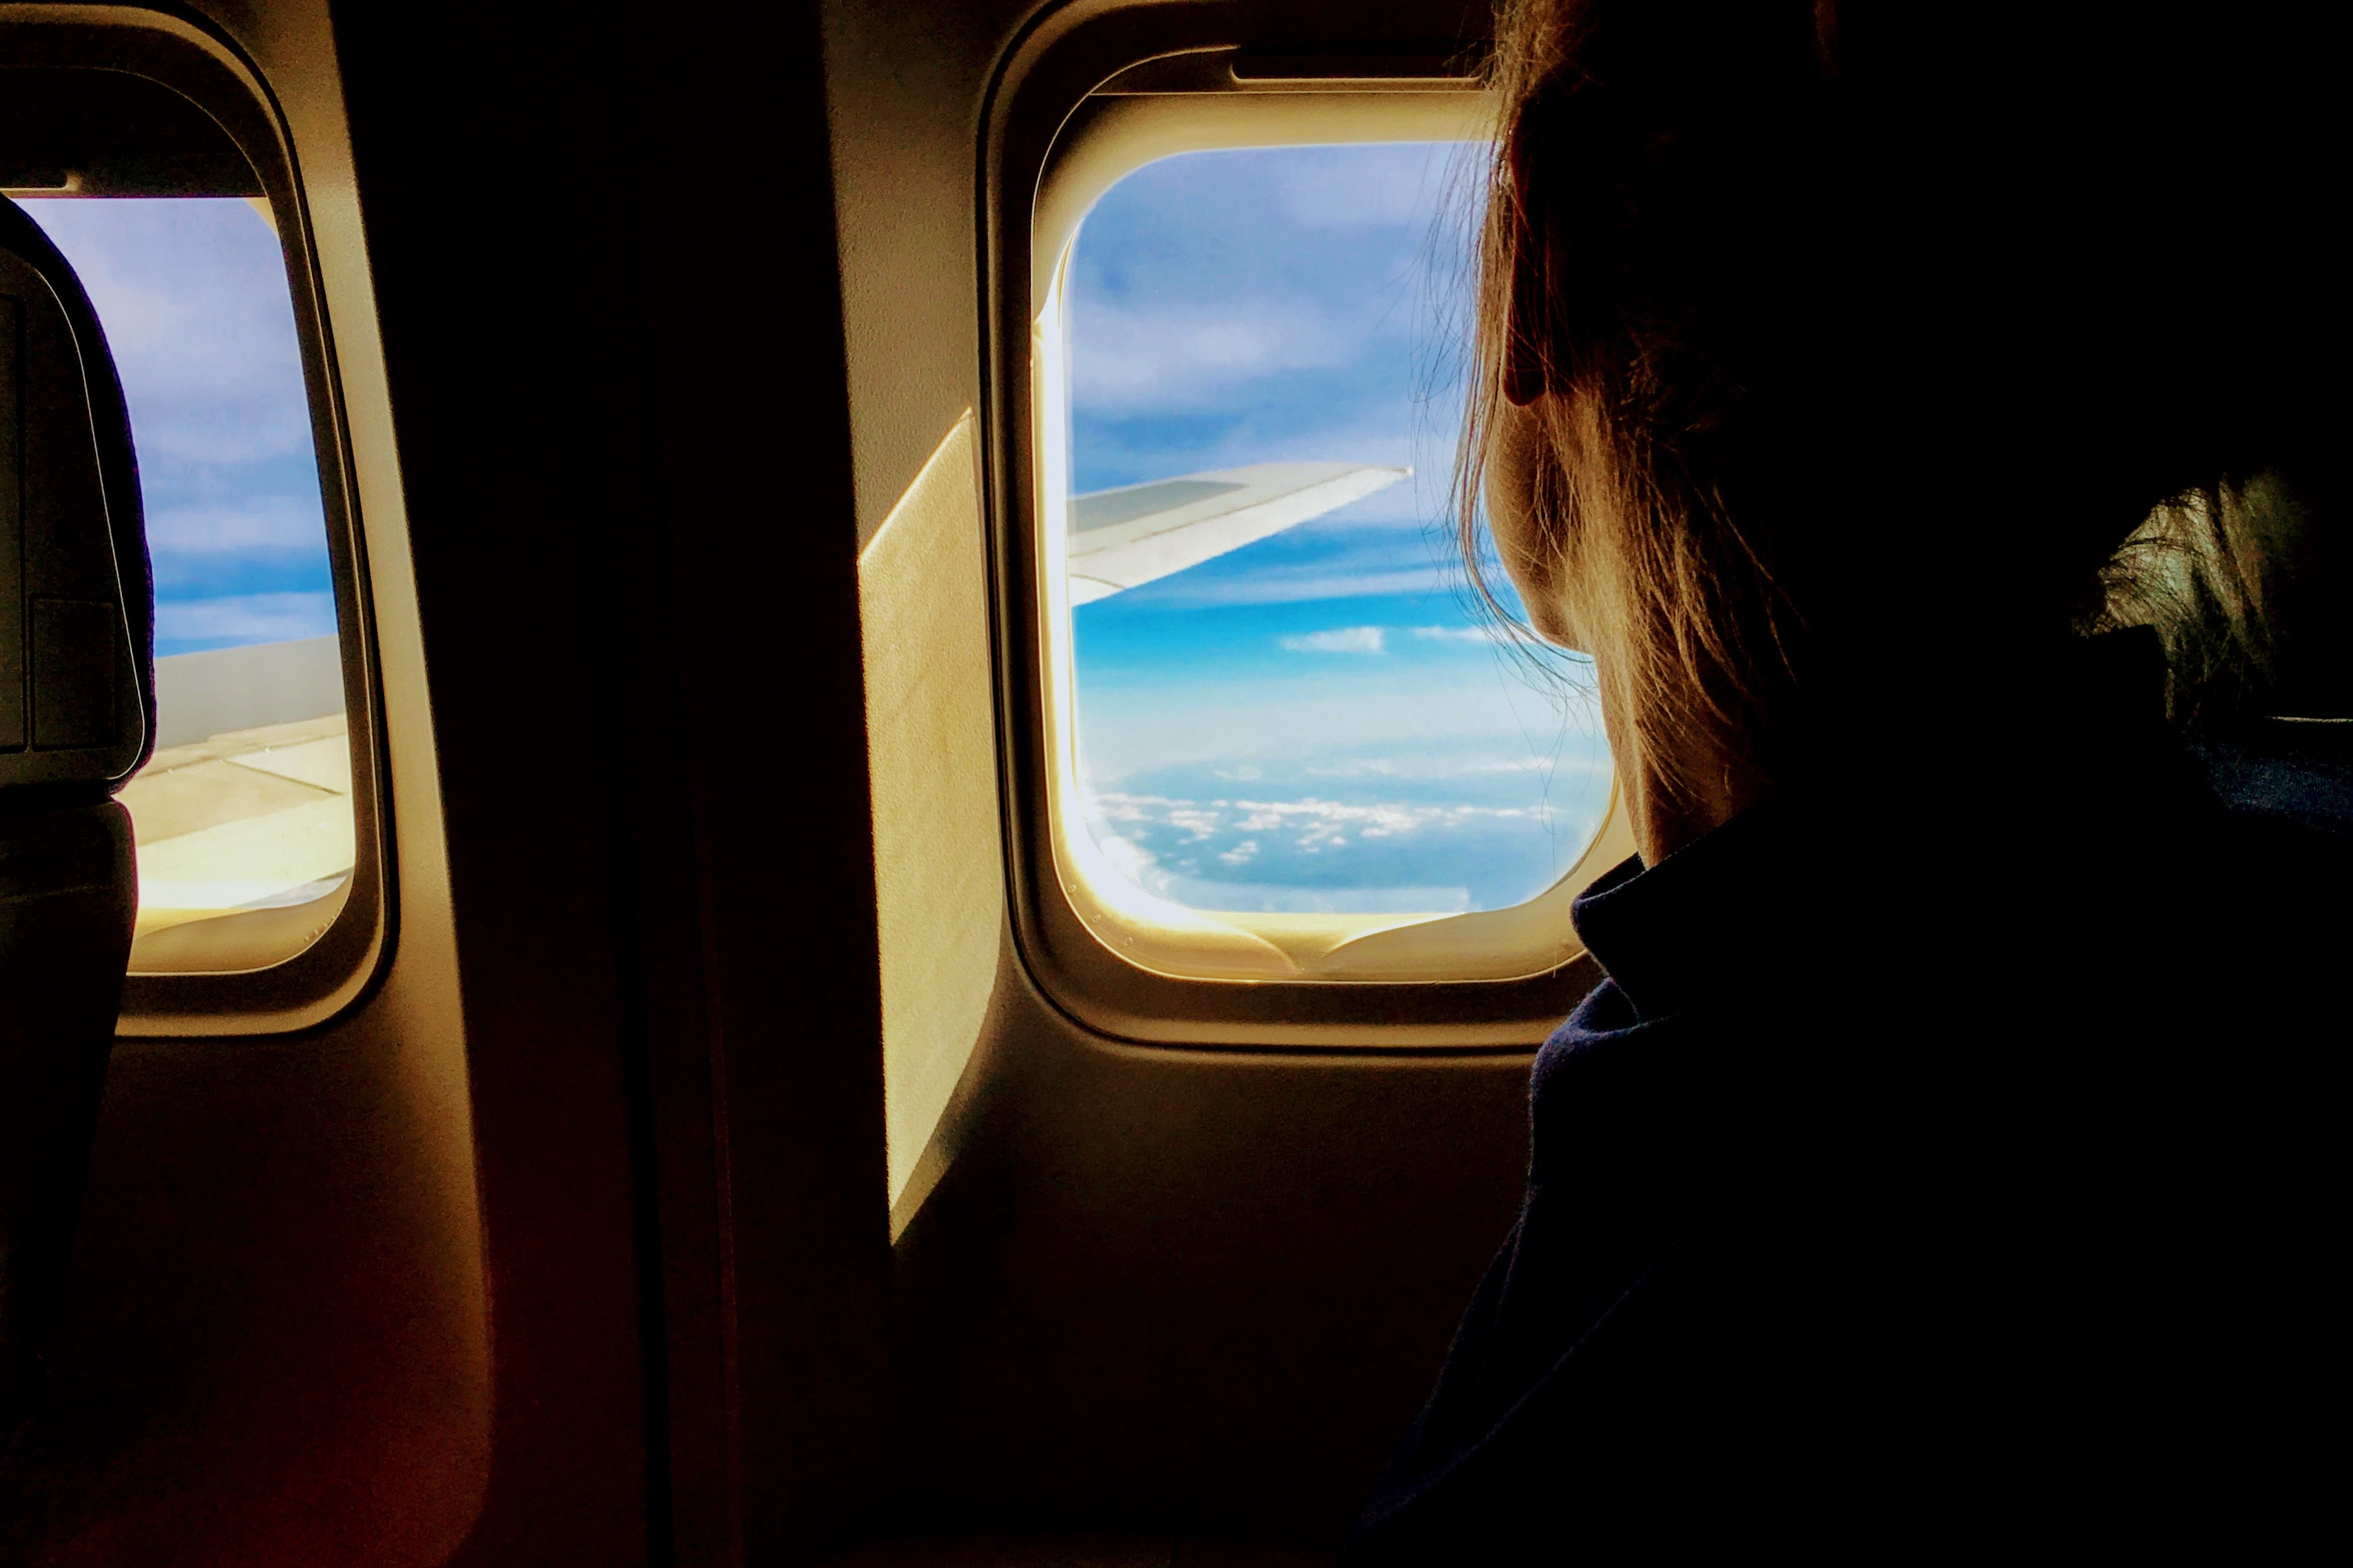 An athlete looks out the window of an aircraft, considering their destination timezone